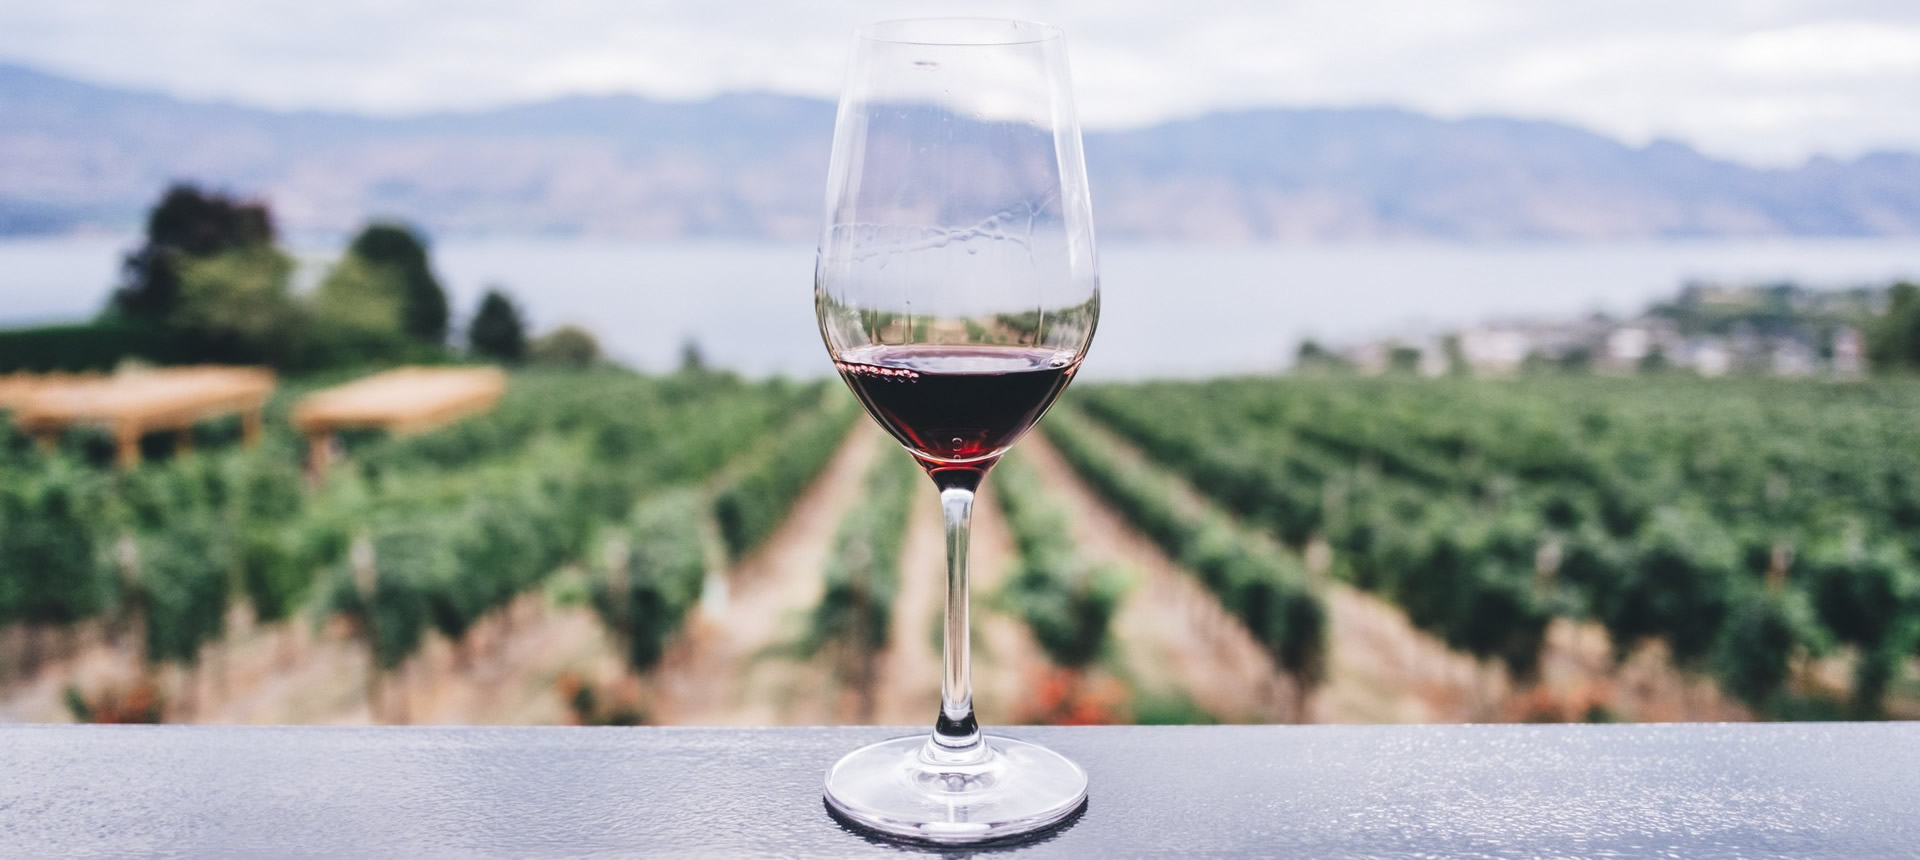 Wine glass with vineyards in the background